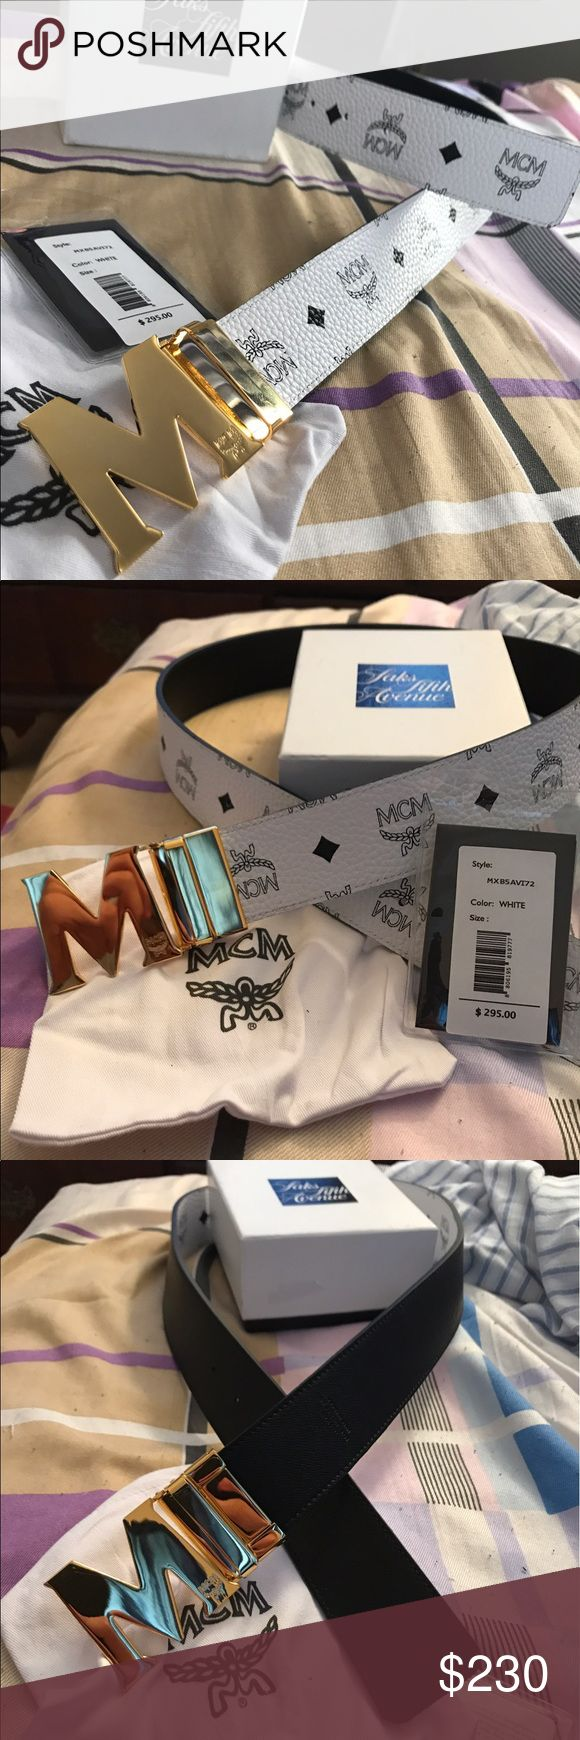 Authentic Reversible MCM Belt BRAND NEW Authentic Reversible Black/White MCM Belt size 30-32.   Comes with box, tags, and dust bag MCM Accessories Belts